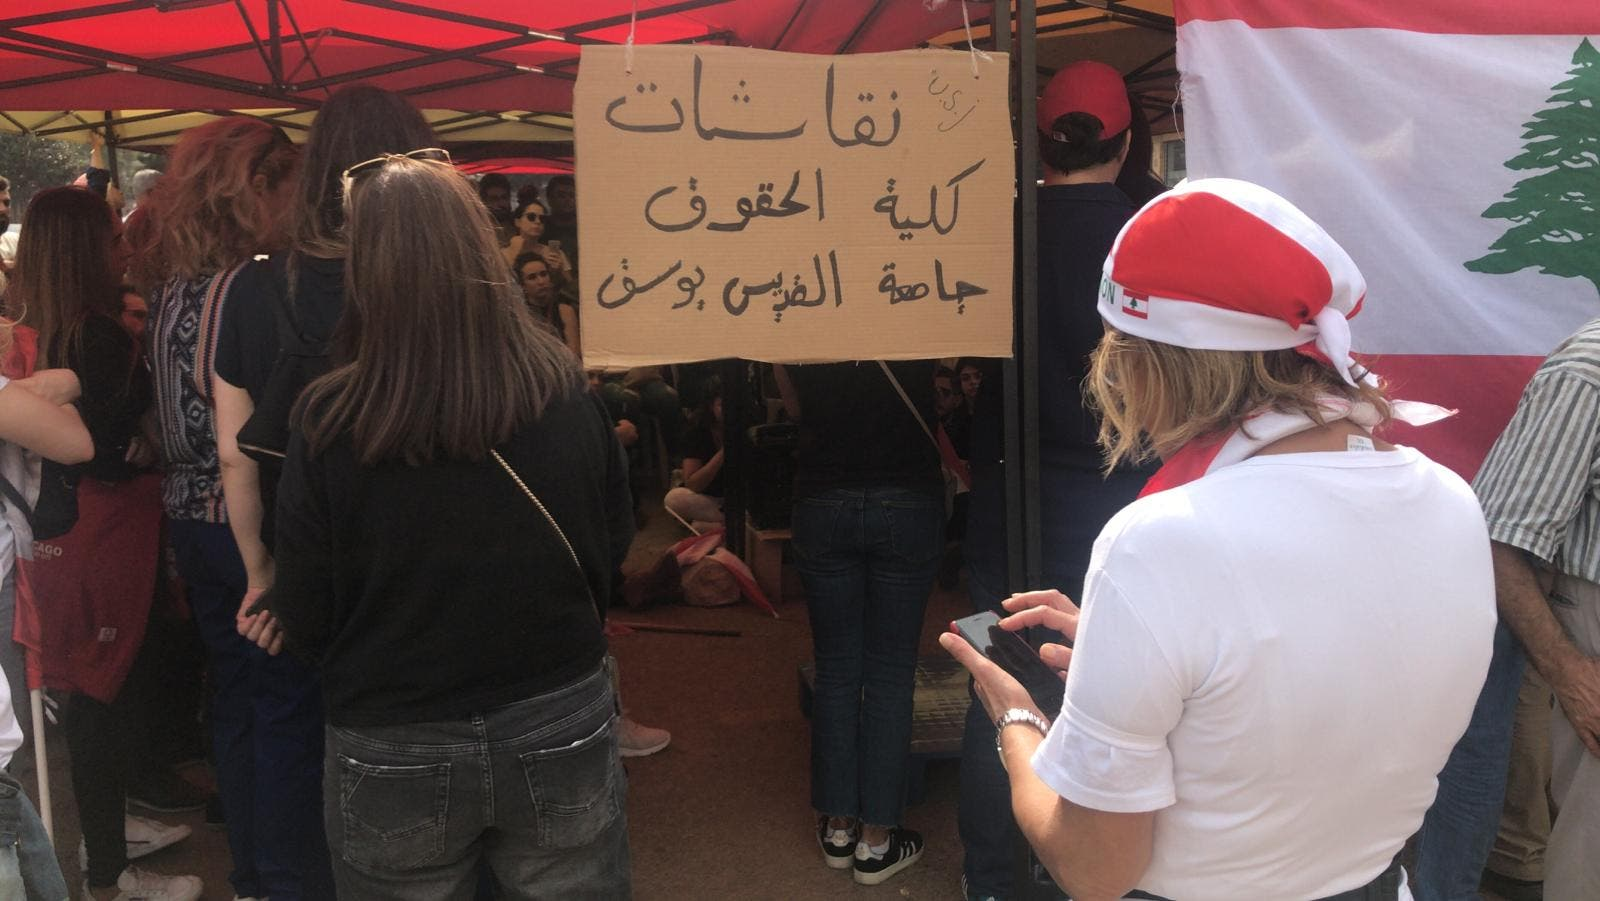 Lebanon citizens attend a civil society tent - AA